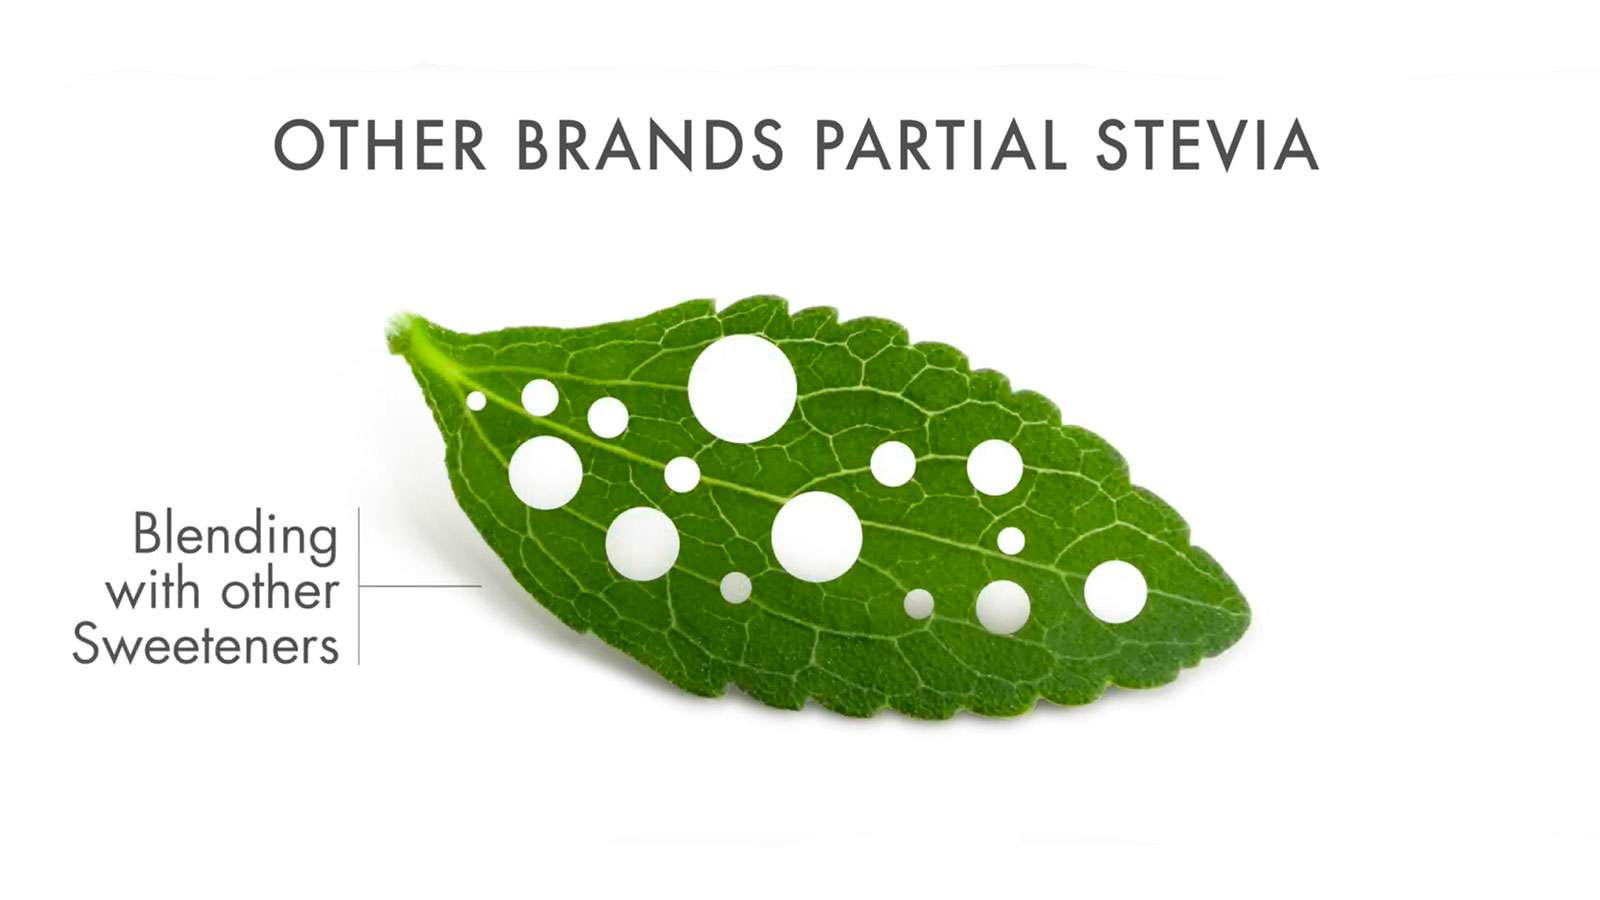 Video thumbnail of Stevia leaf with holes out of it. Reads: Other Brands Partial Stevia Blending with other Sweeteners. Play video is next.